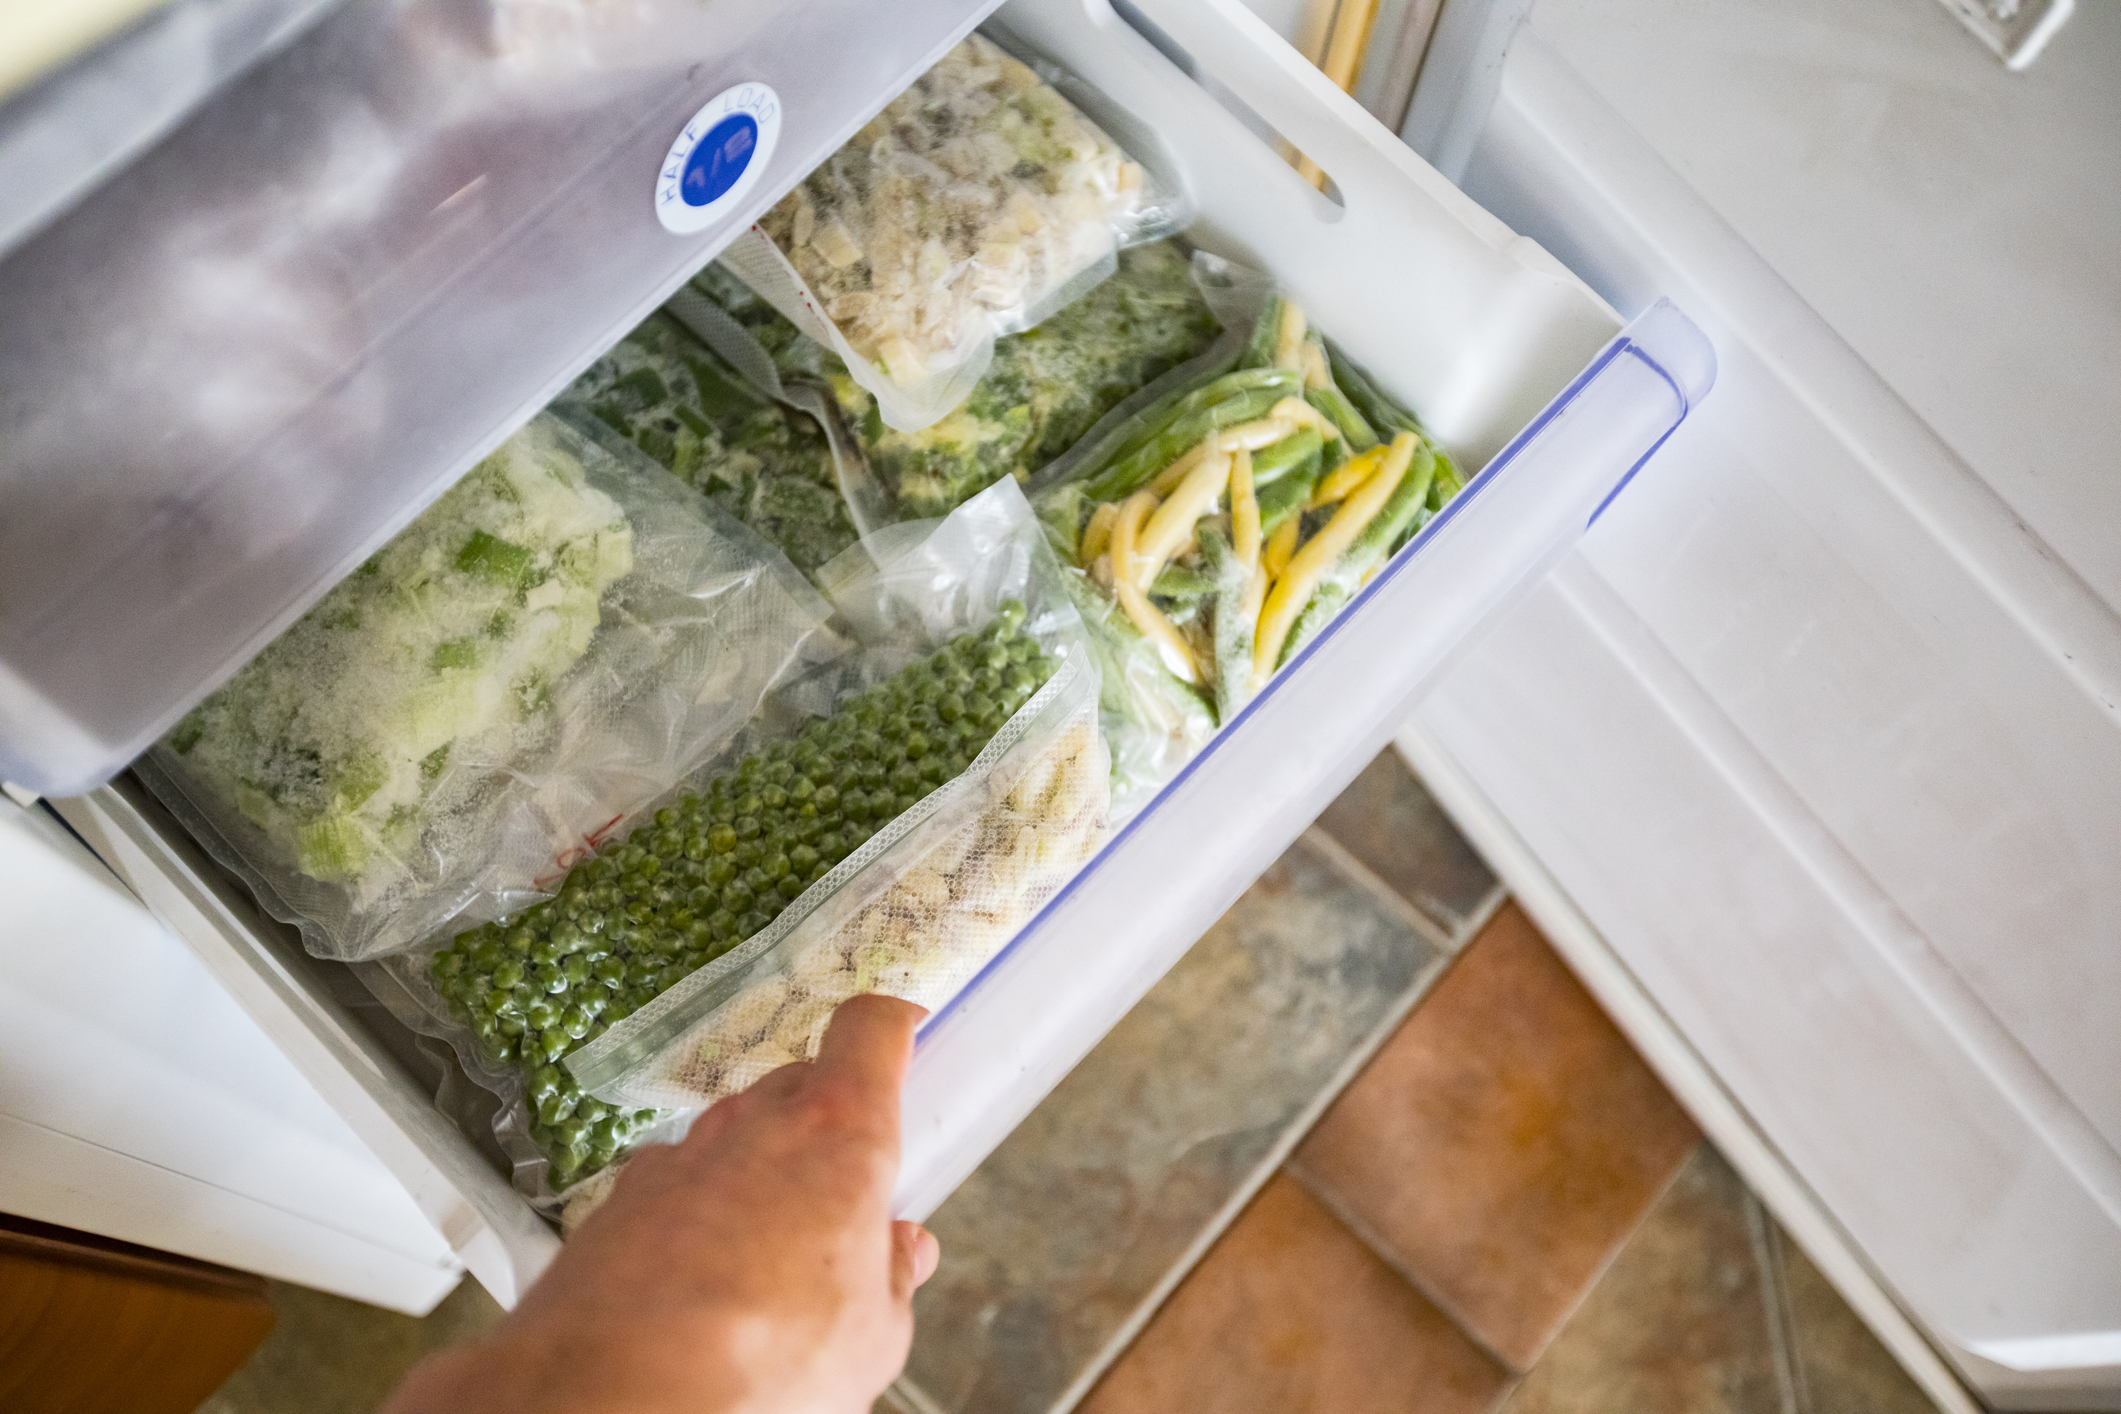 Freezer Drawer With Packed Vegetables